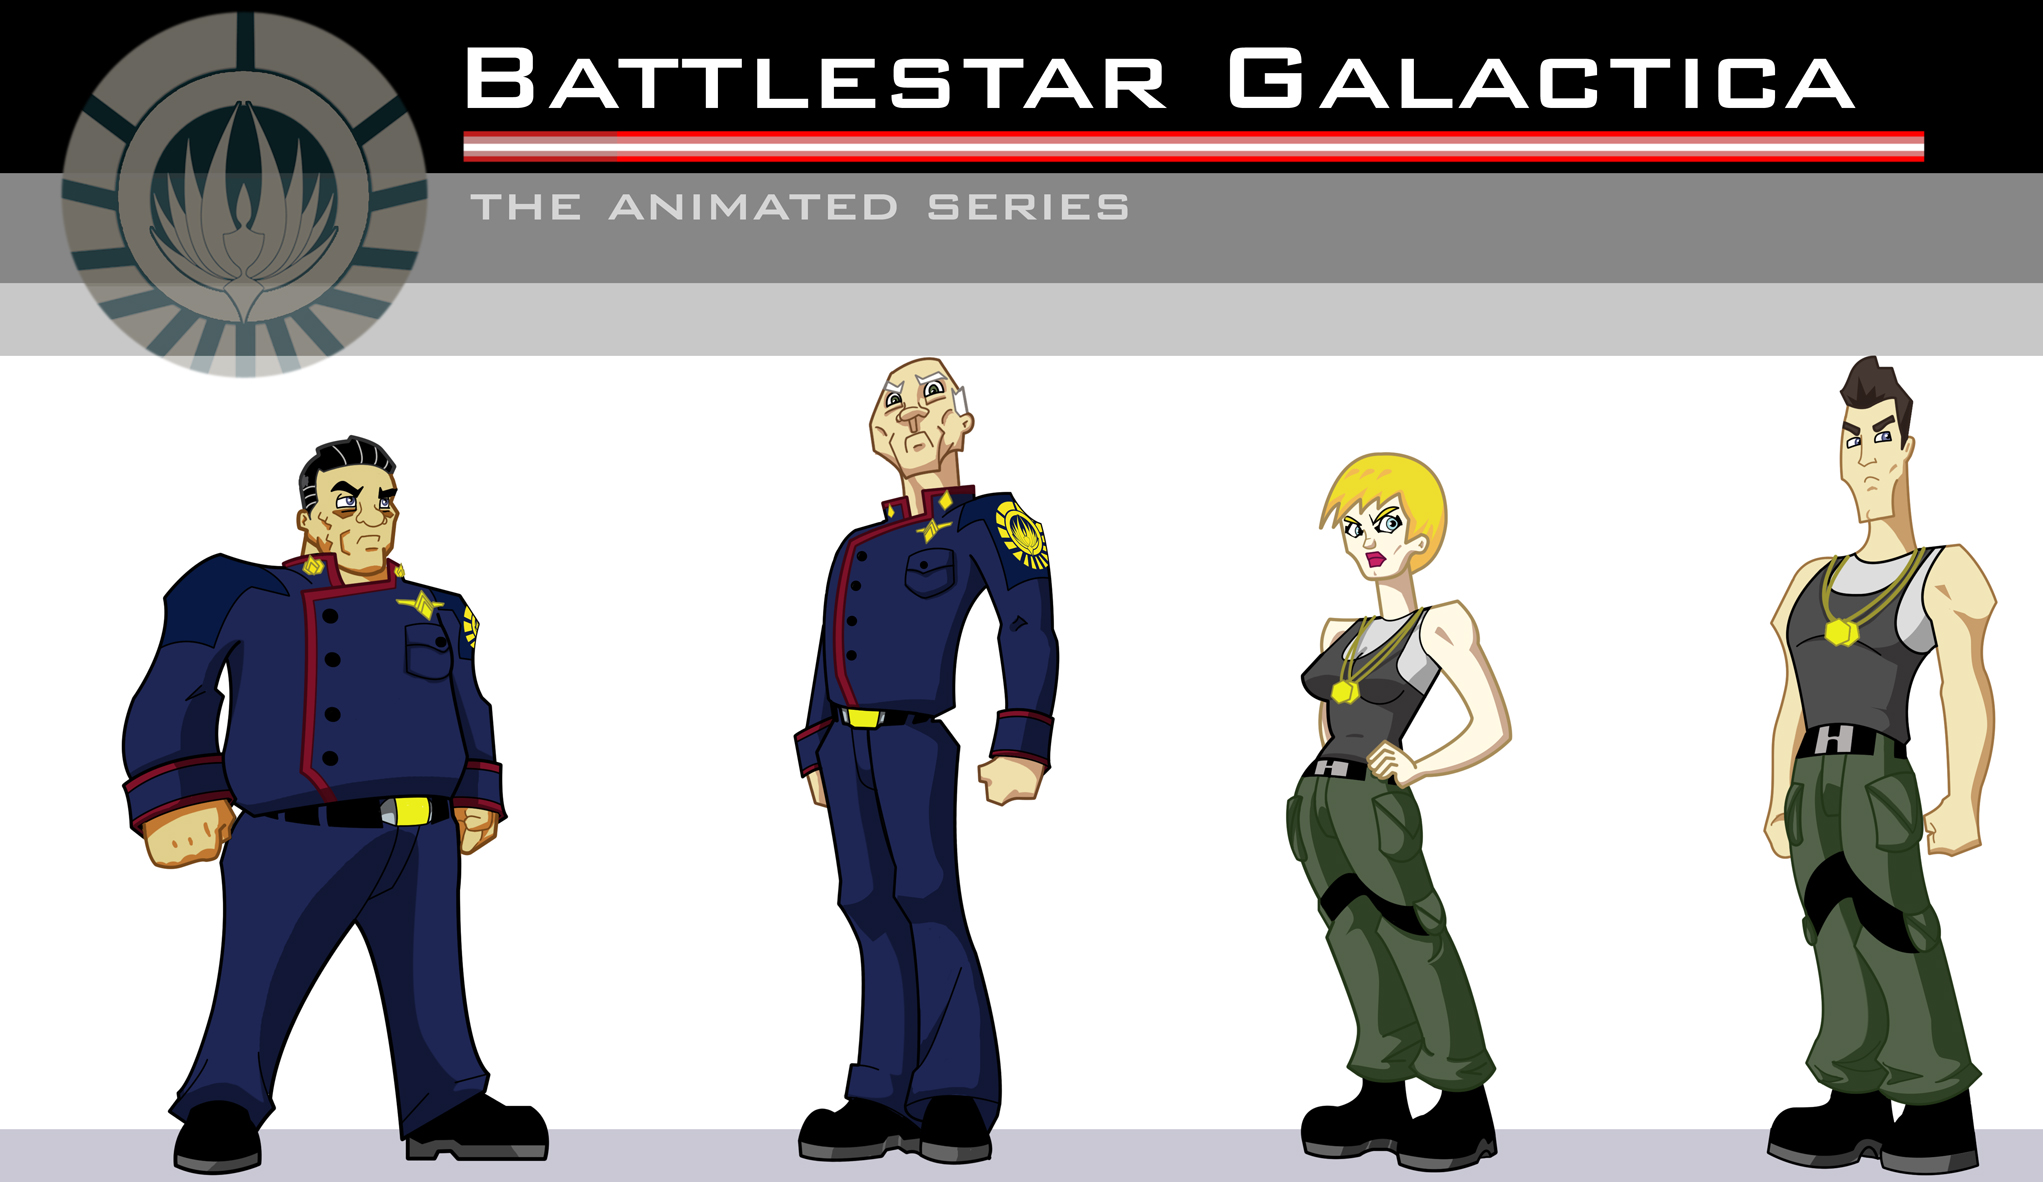 Battlestar Galactica Animated Concept Art , pencil, digital ink and color, 2010